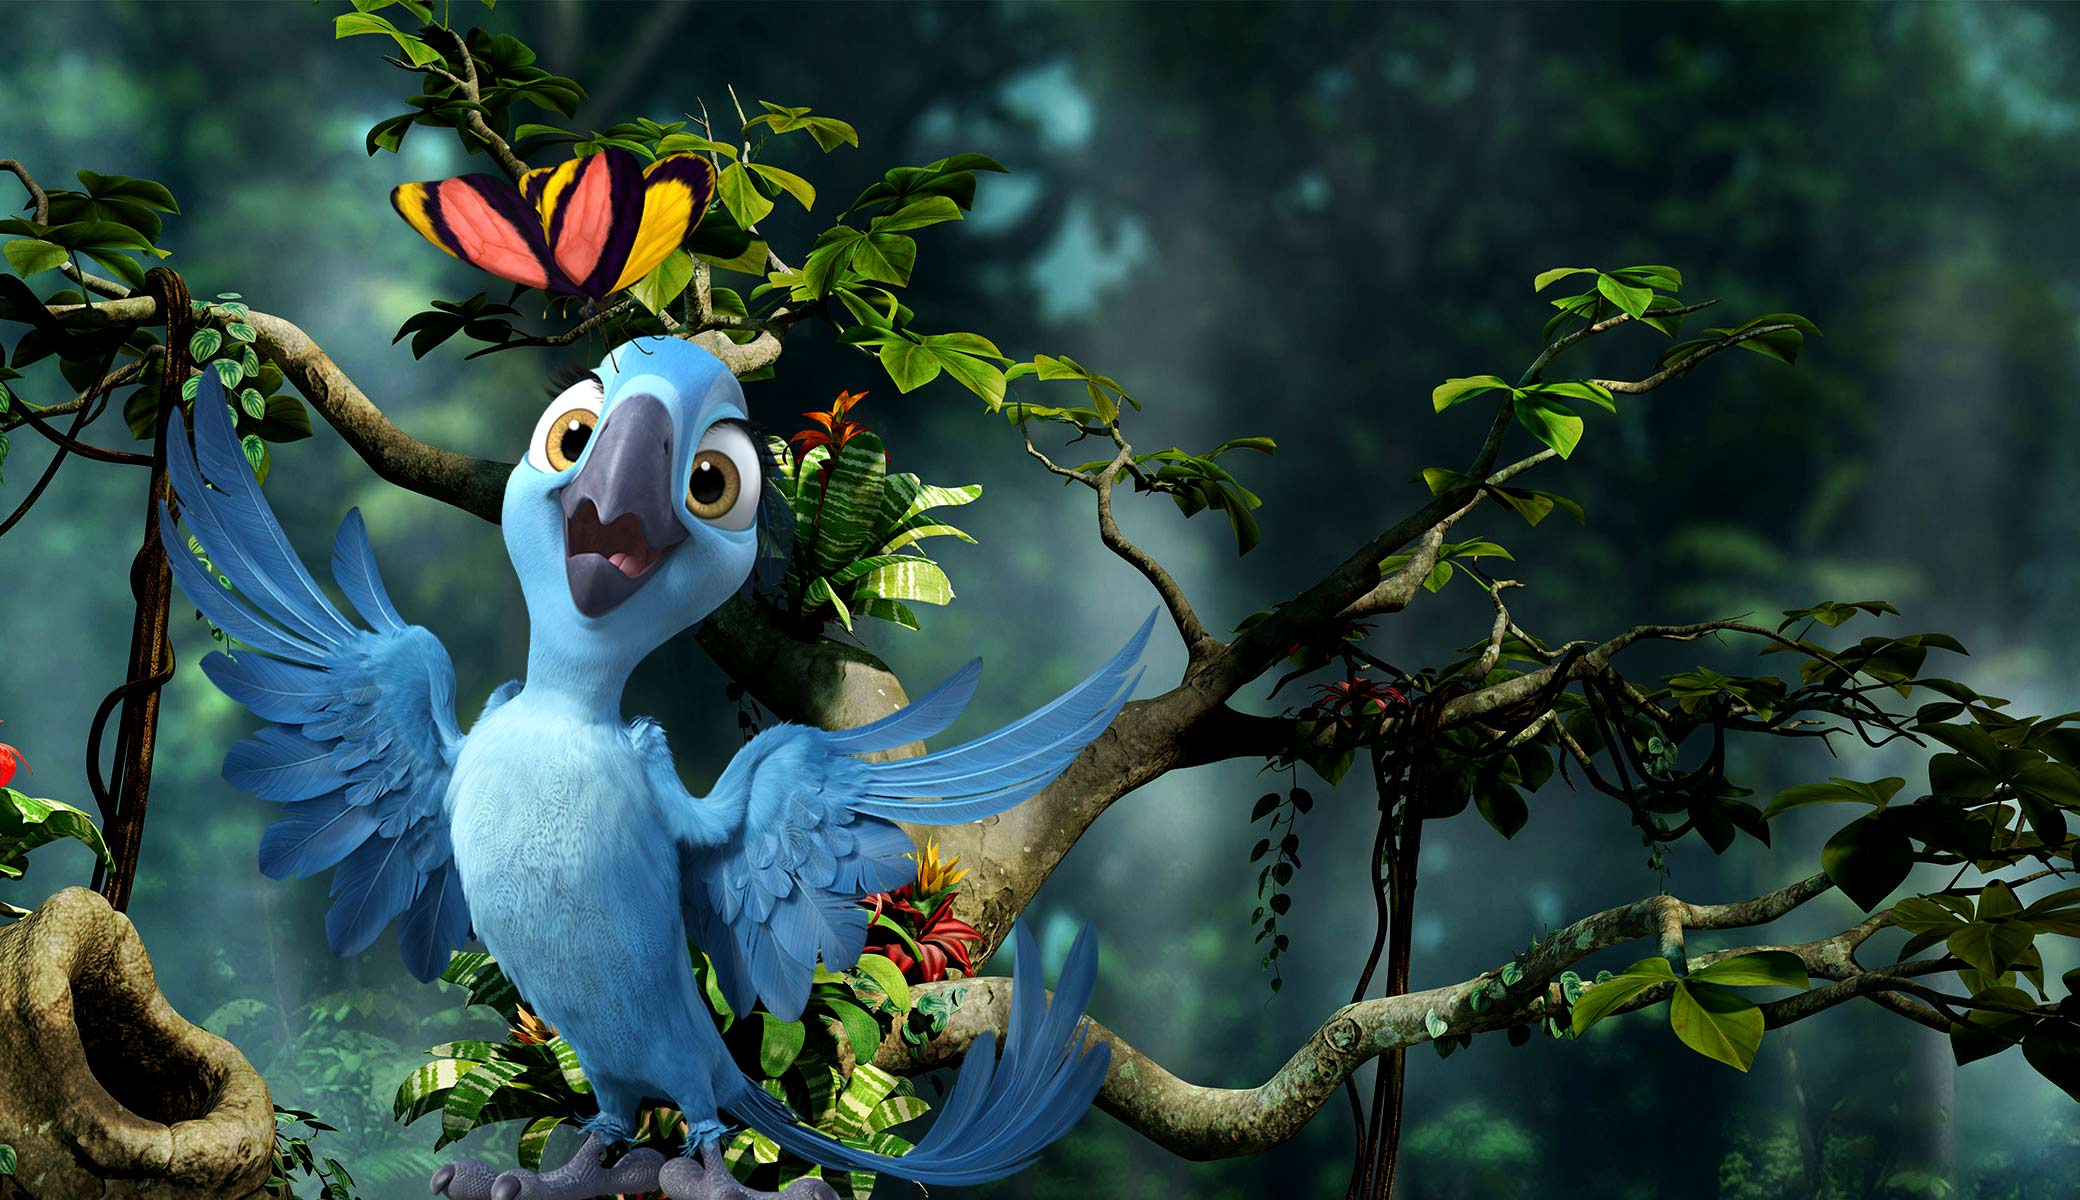 Bia from rio 2 desktop wallpaper bia from rio 2 wallpaper click picture for high resolution hd wallpaper voltagebd Choice Image